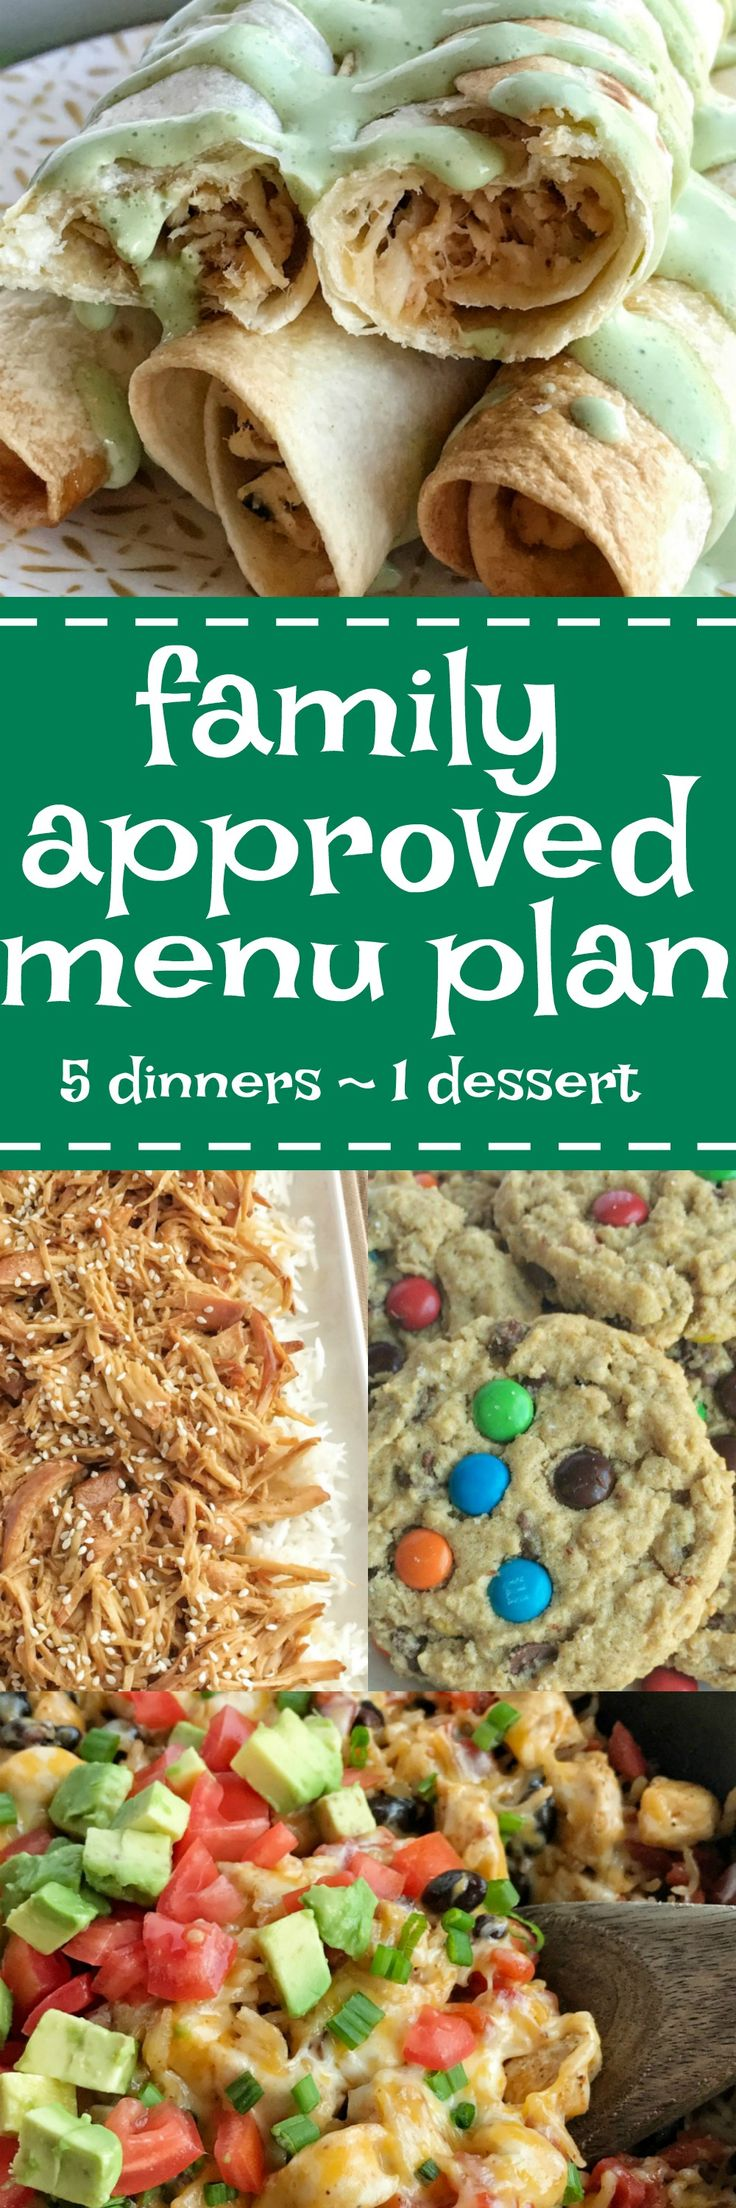 Family menu plan that your entire family will love! Easy, family approved, simple ingredients, and delicious food to enjoy together! www.togetherasfamily.com Together as Family Blog